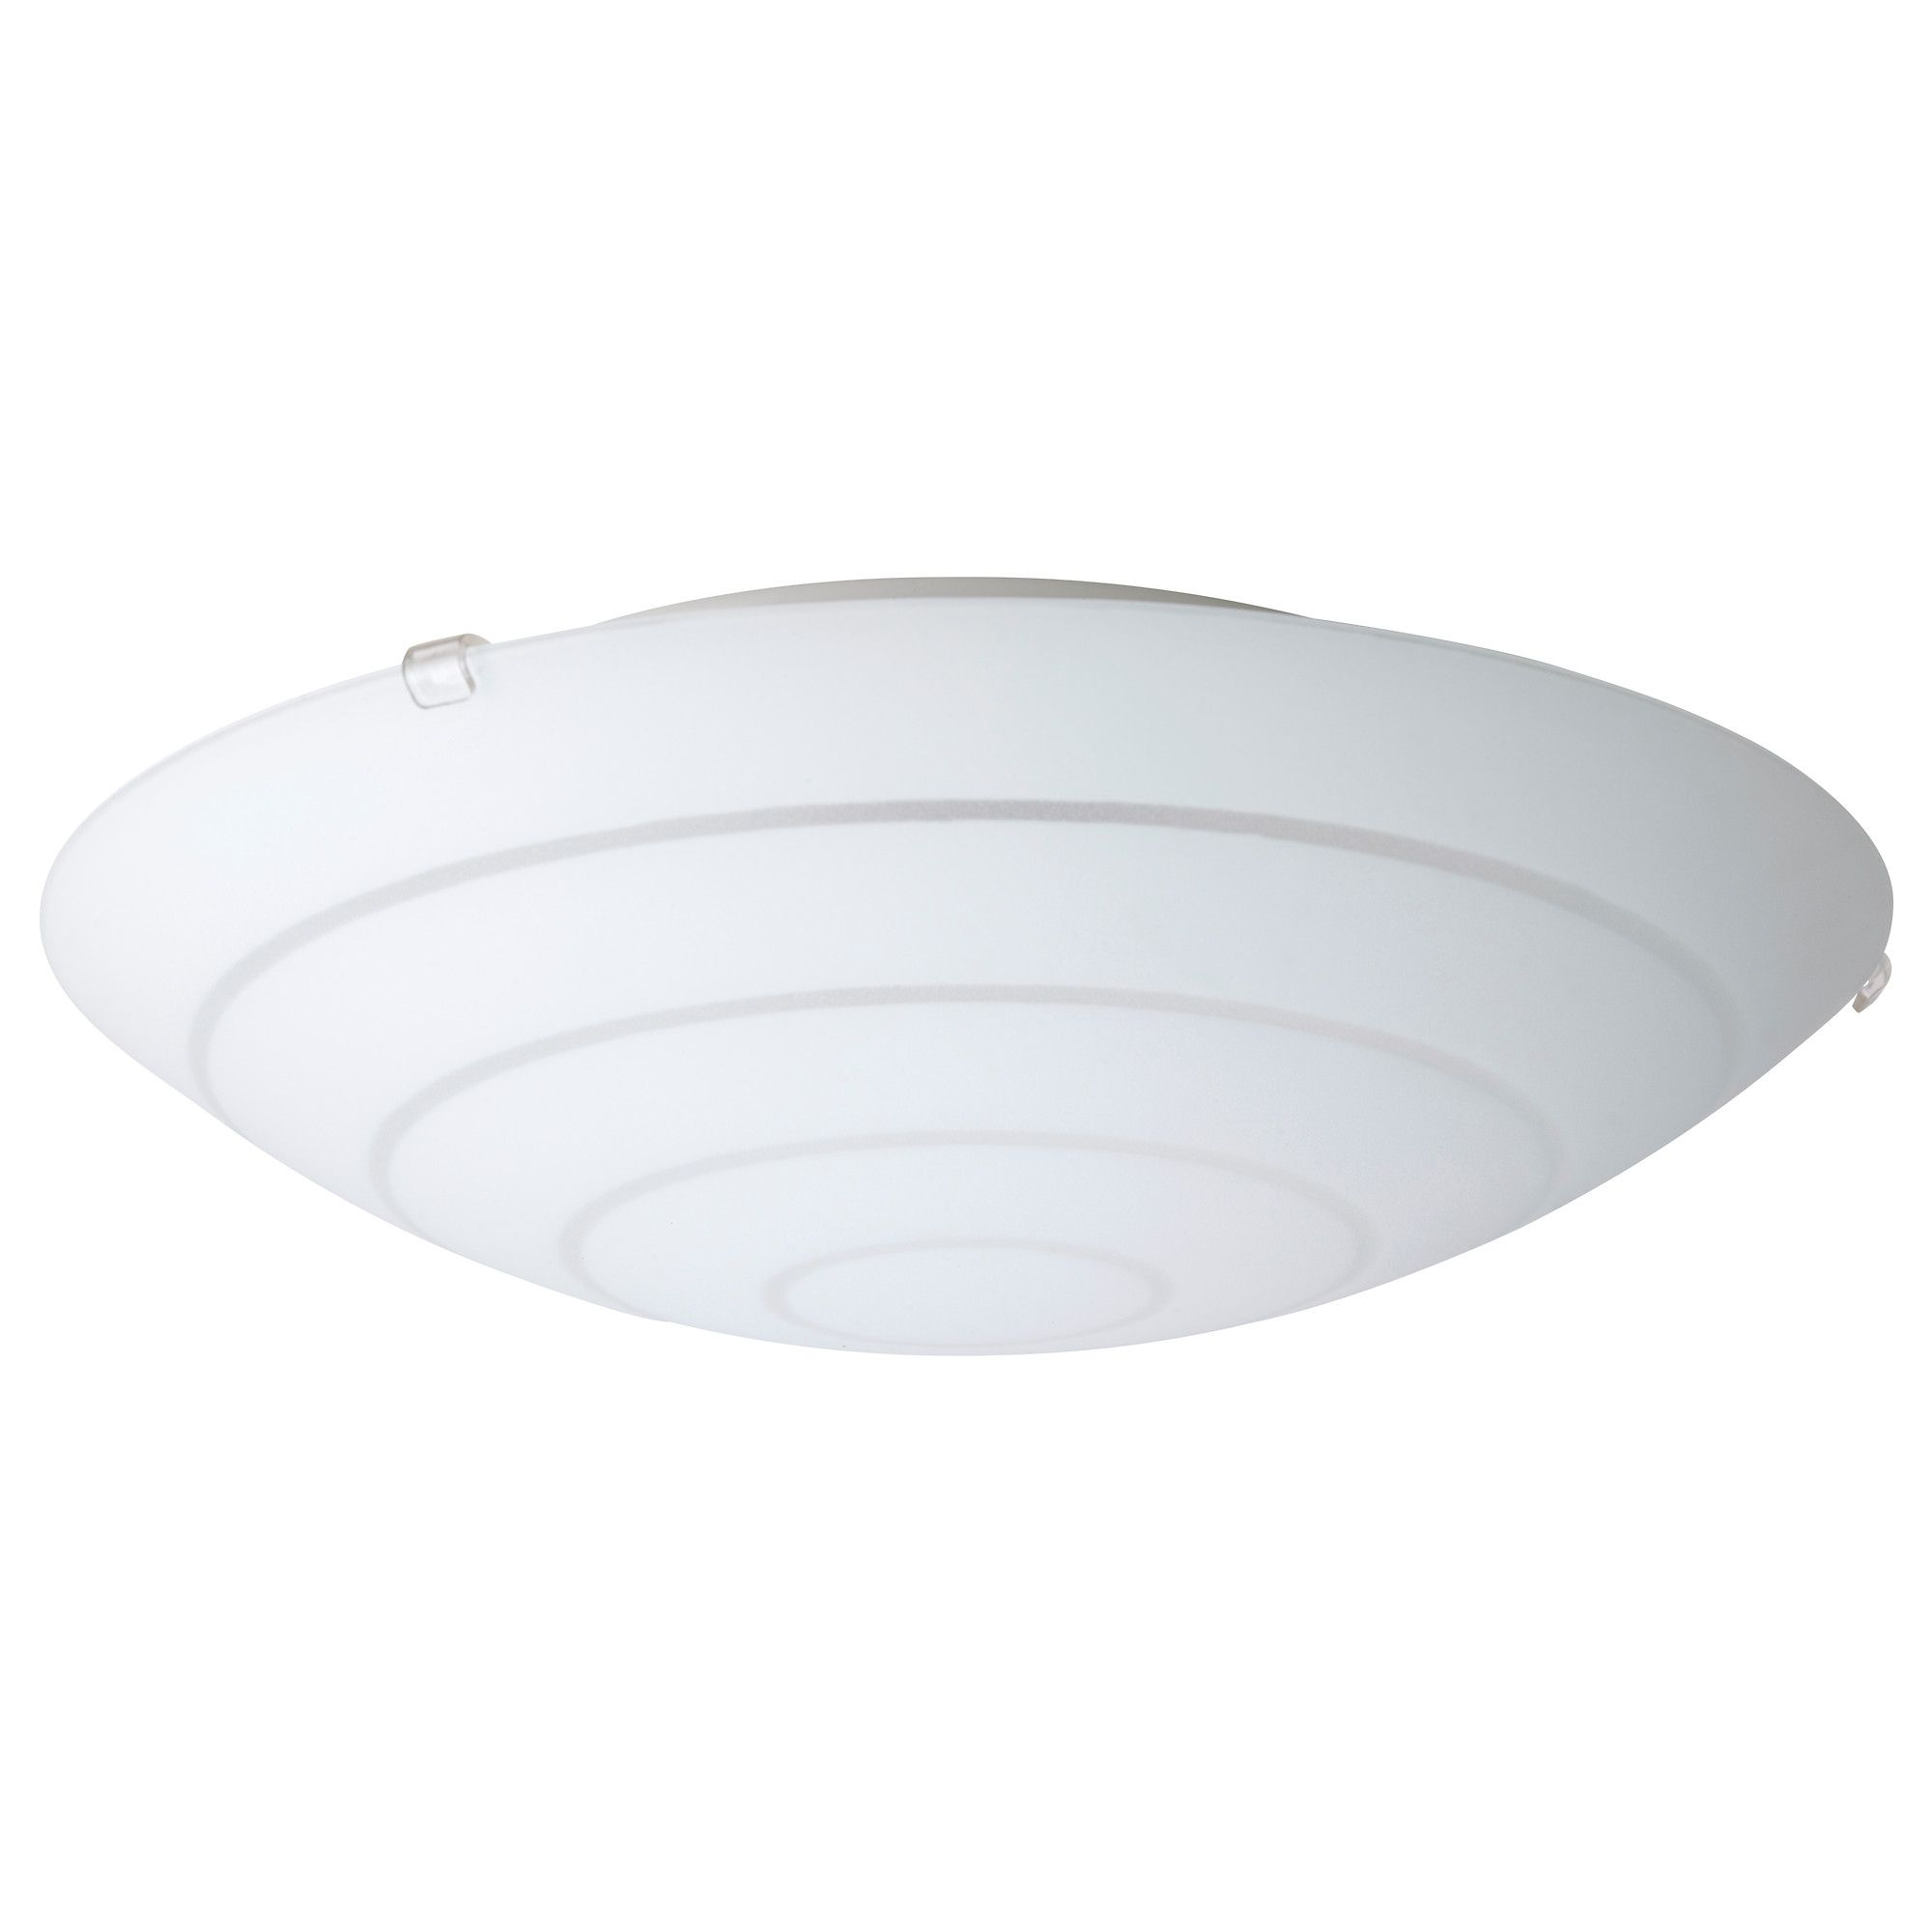 Merveilleux HYBY Ceiling Lamp   IKEA $13 Hall Basement, Possibly Office Overhead Lights